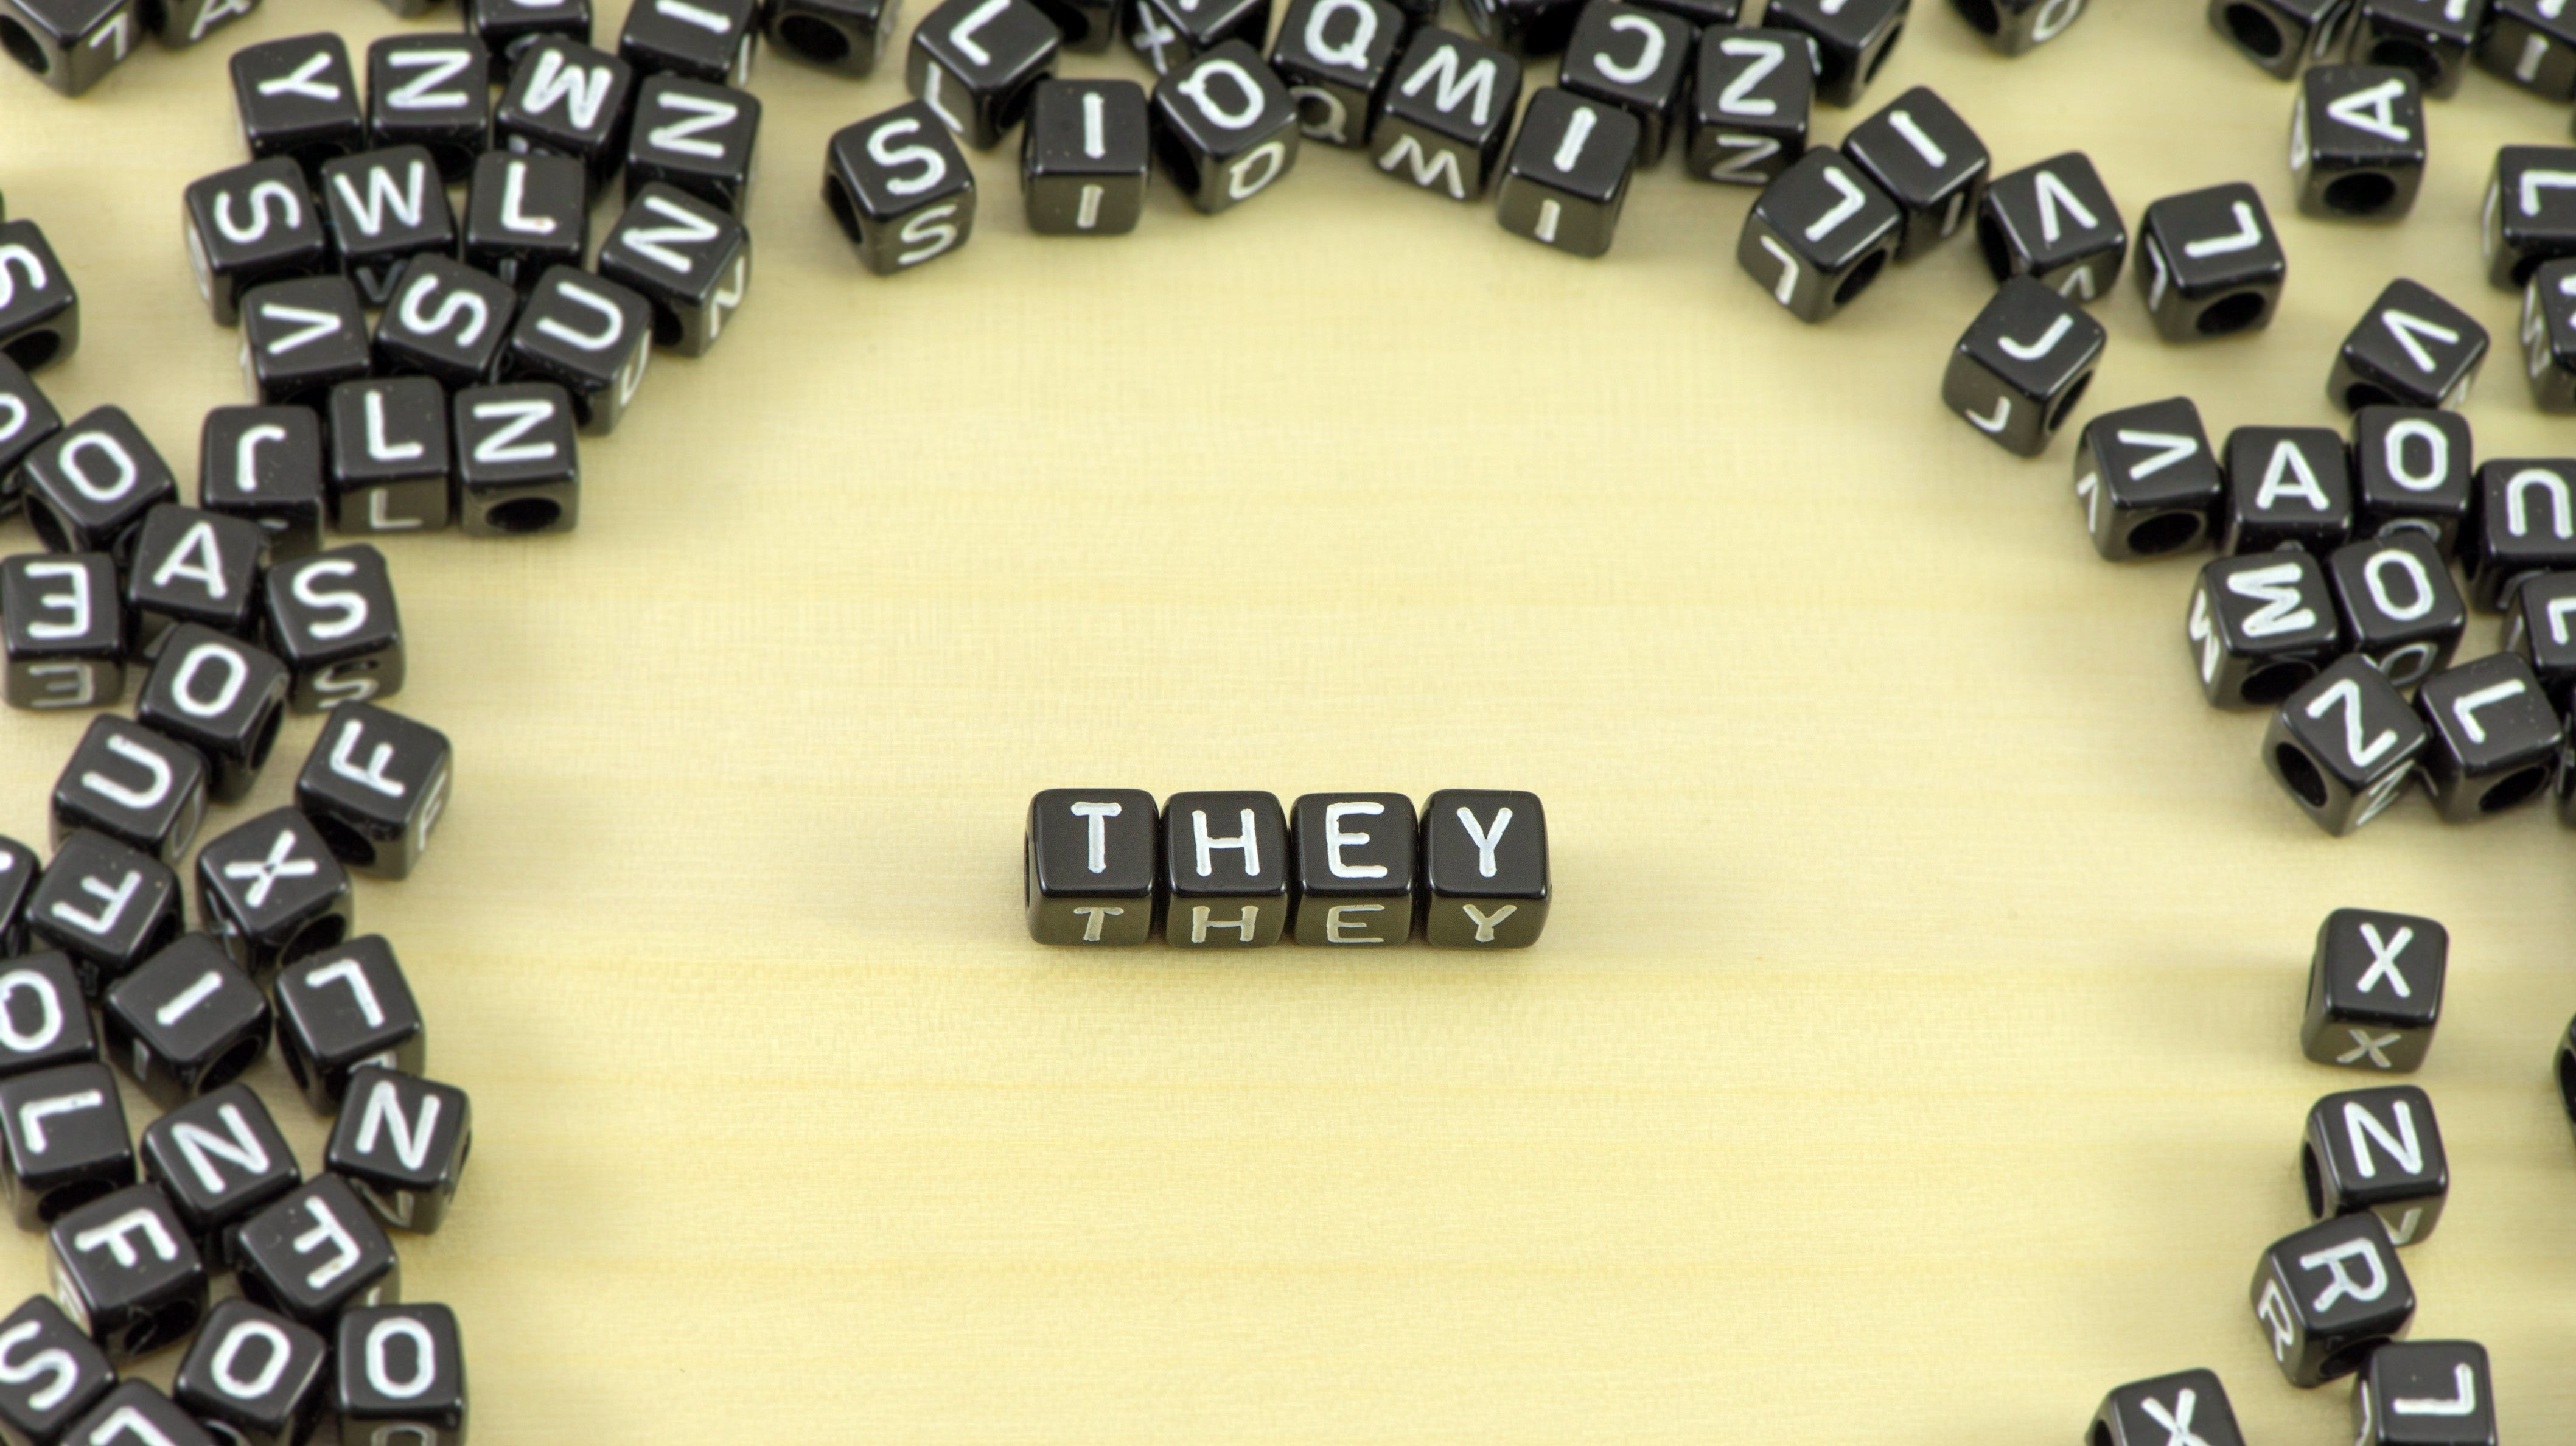 Stop Grammar Policing The Word 'They'